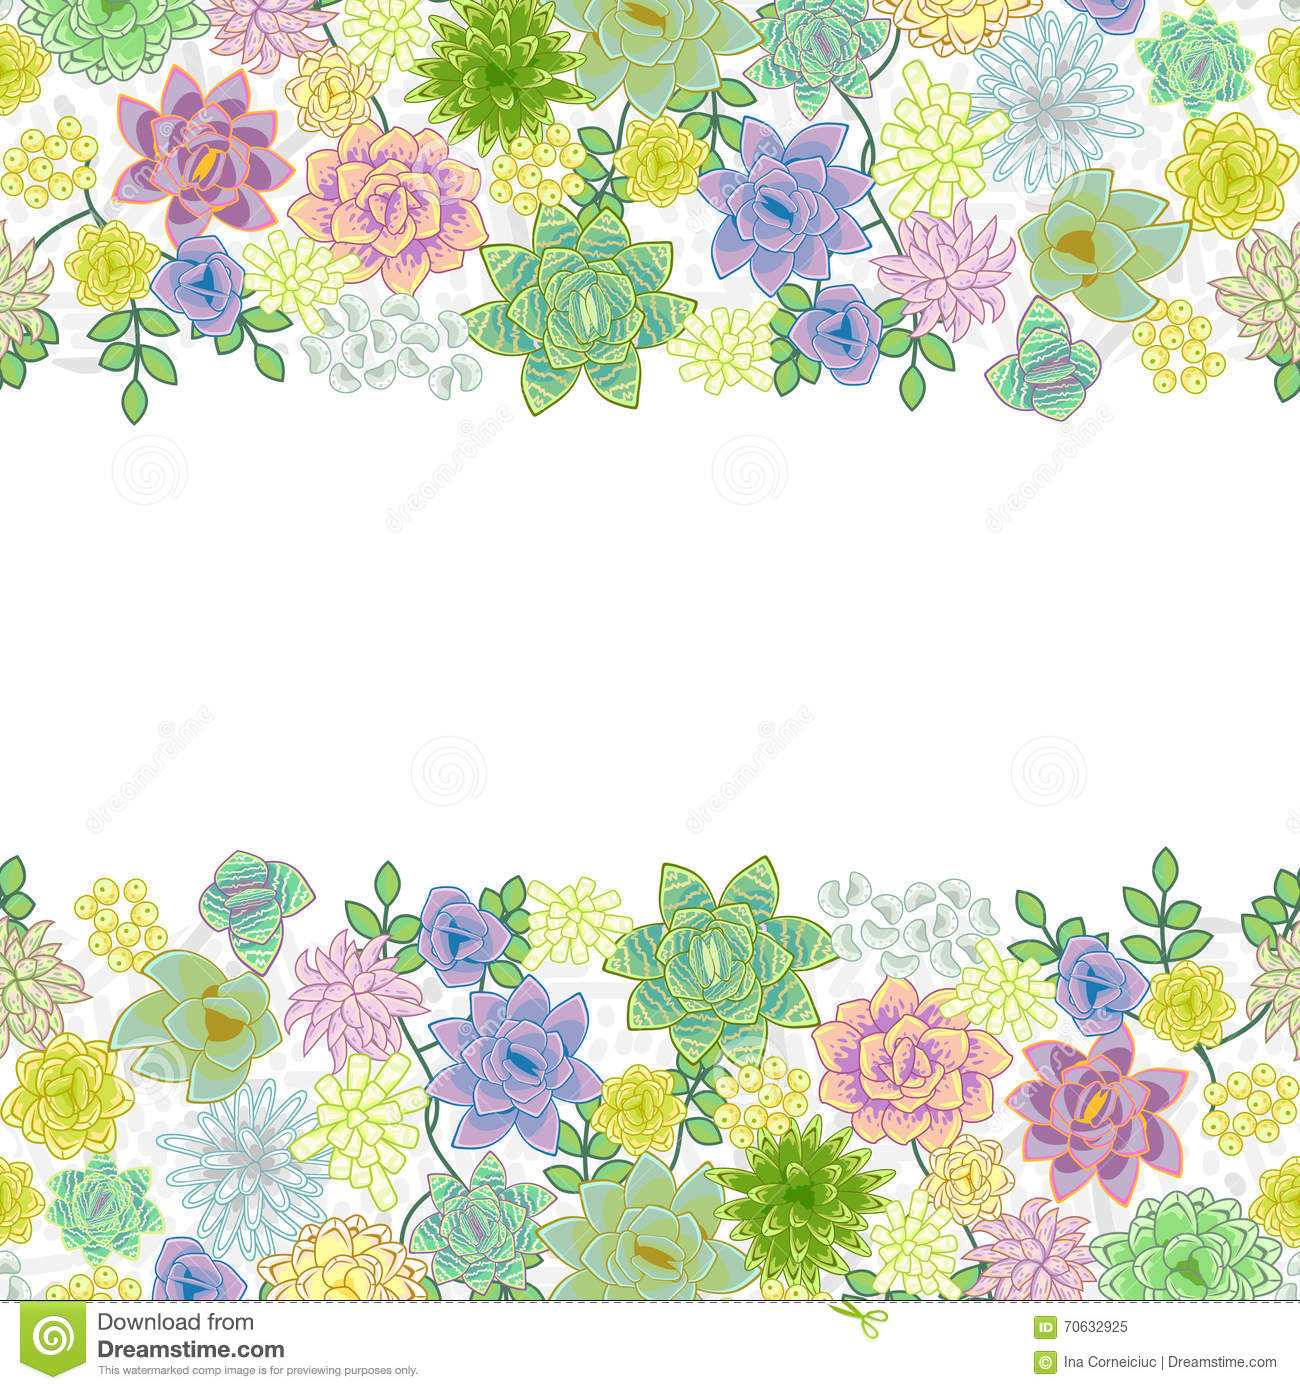 Succulent garden border card design stock vector image for Garden border design